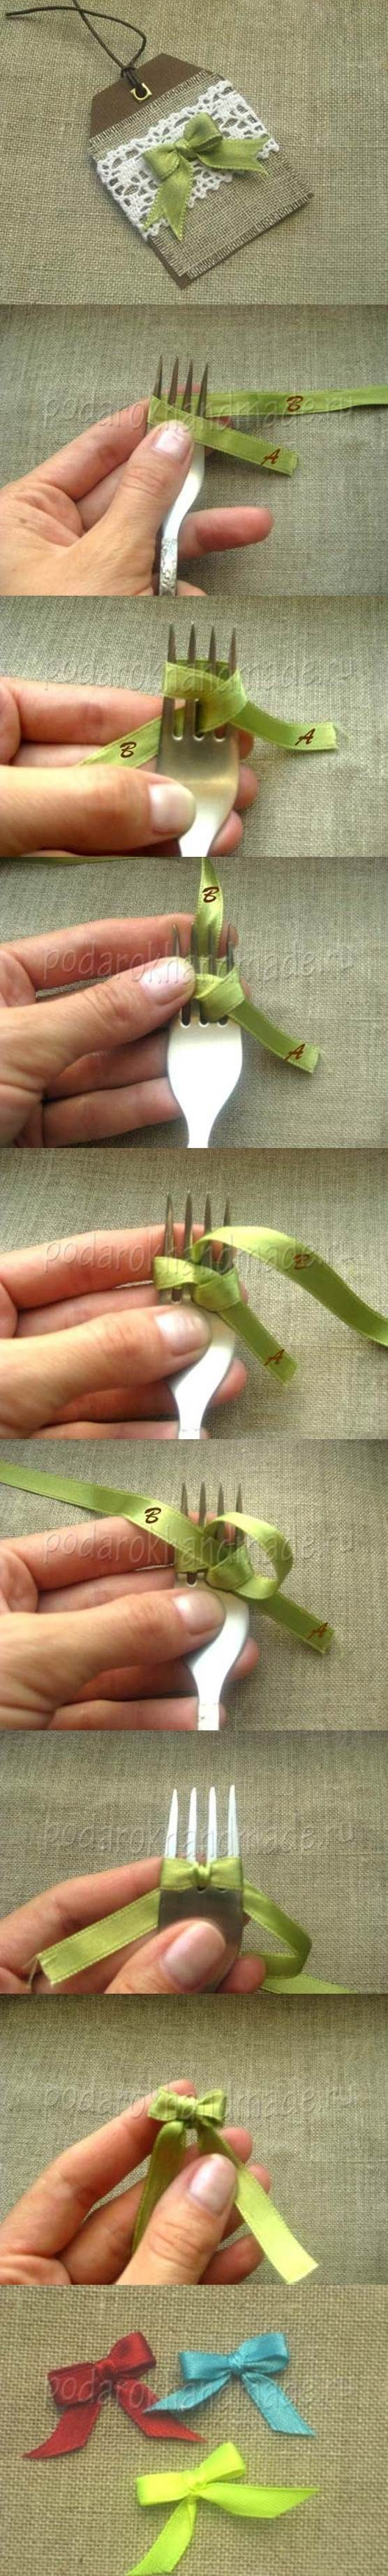 185 best do it yourself images on pinterest gift ideas hand made items needed satin ribbon fork scissors make sure you like top diy ideas solutioingenieria Gallery